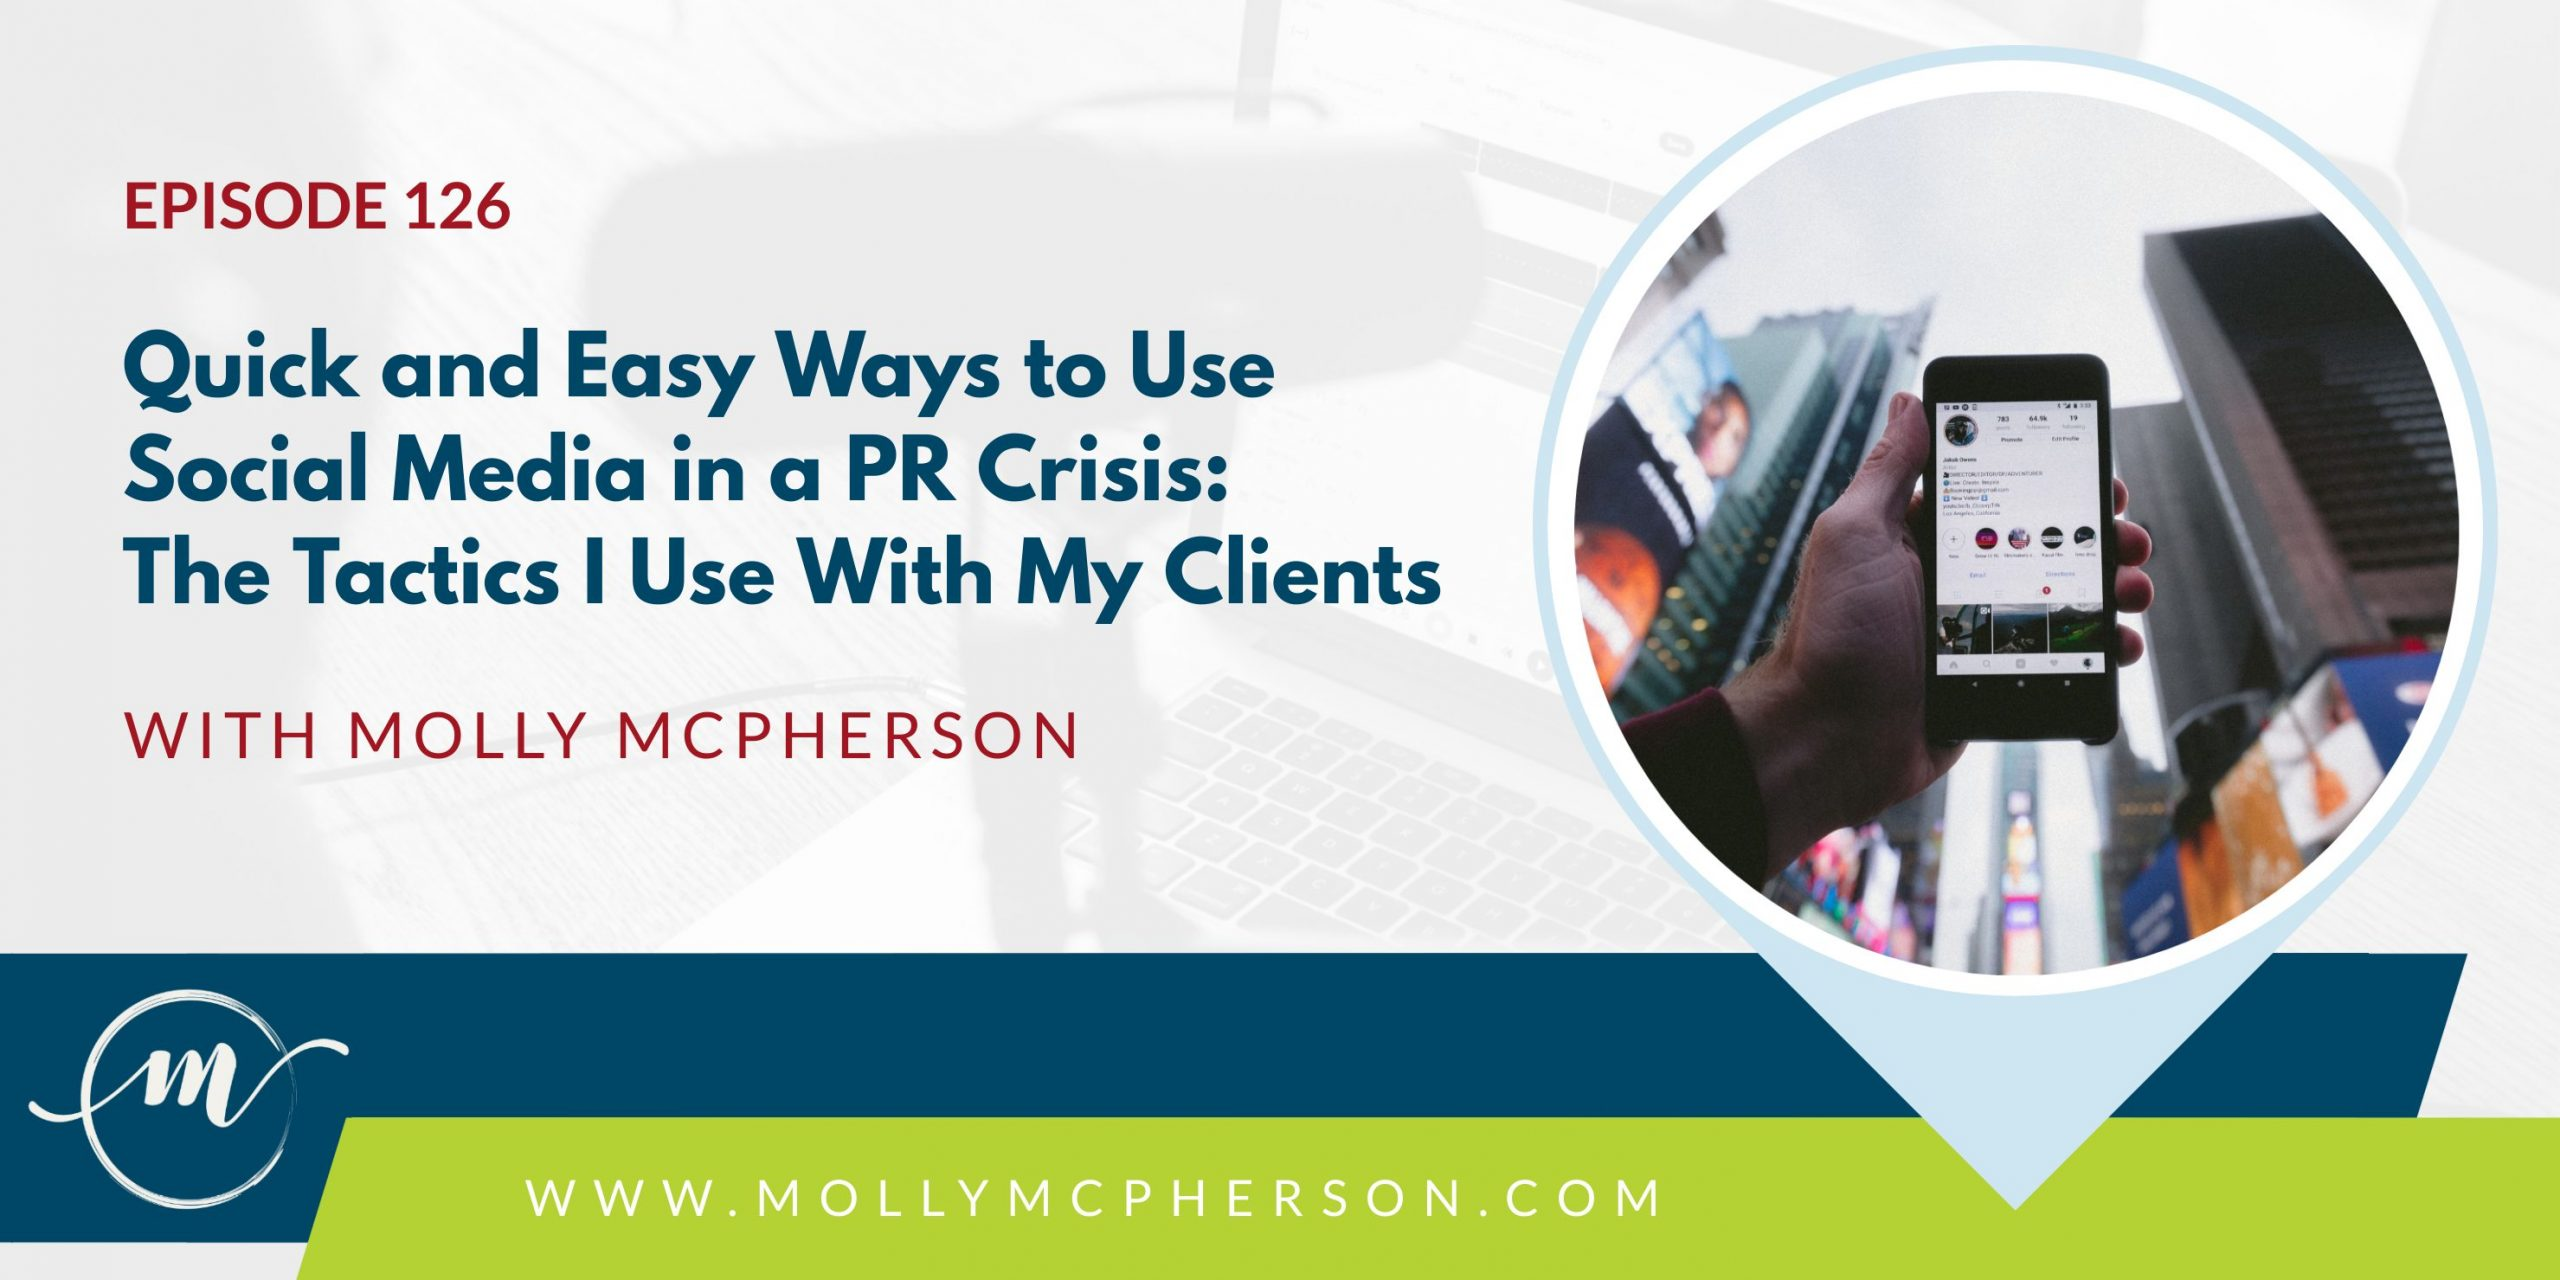 Quick and Easy Ways to Use Social Media in a PR Crisis: The Tactics I Use With My Clients